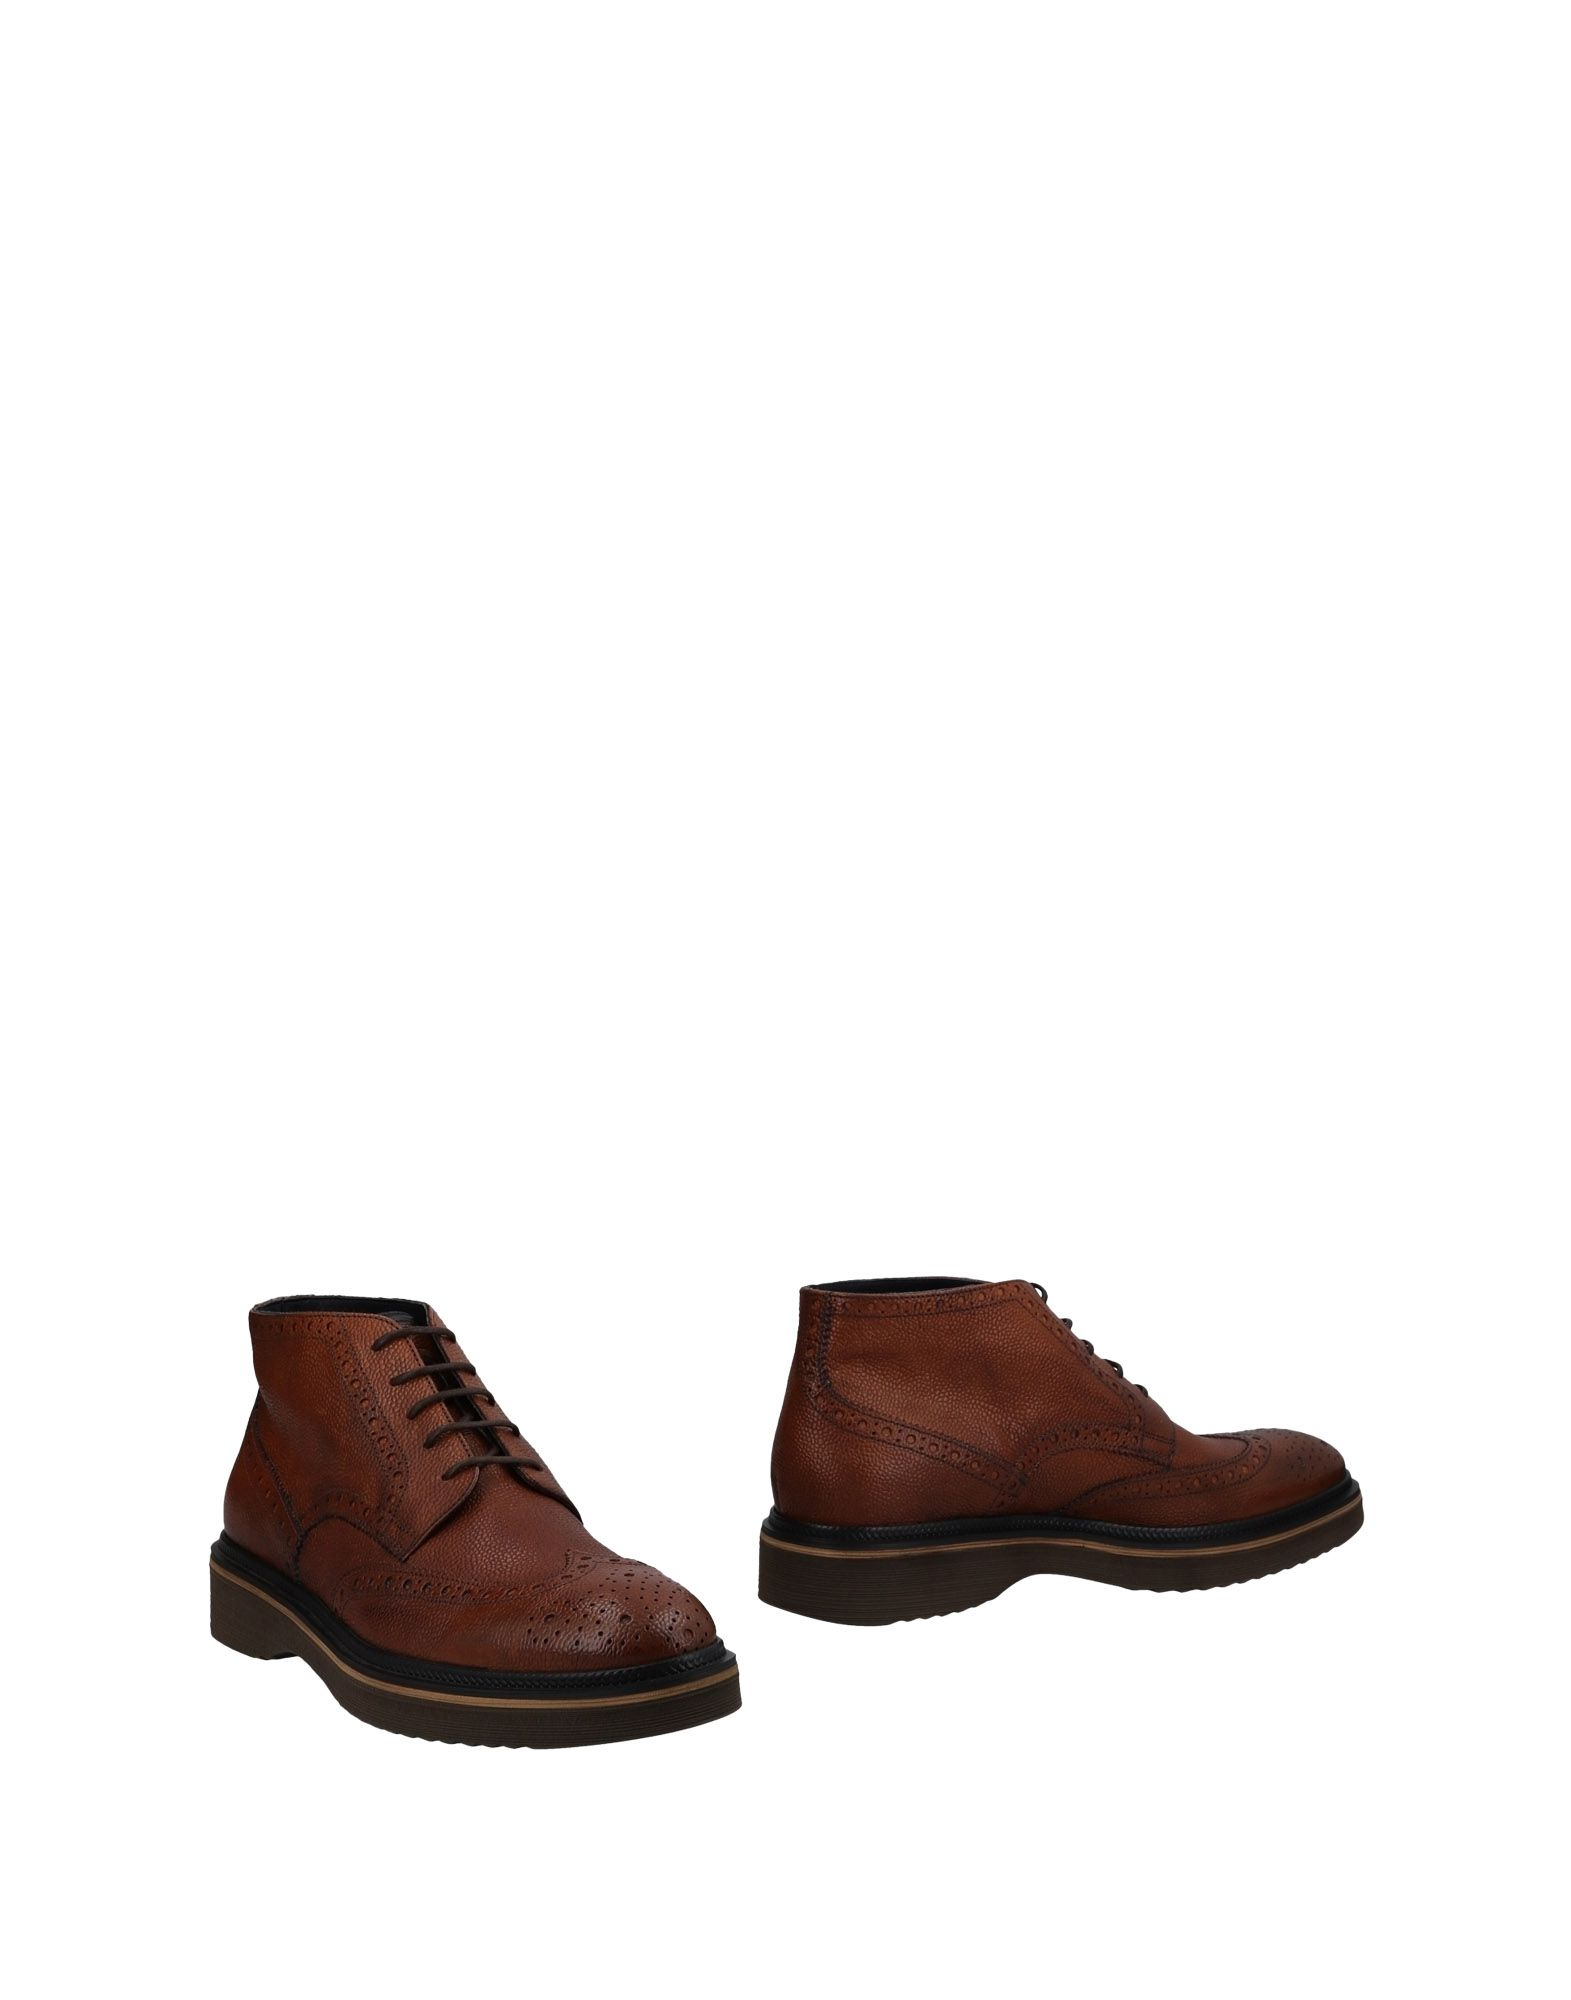 Harmont&Blaine Boots - Men Harmont&Blaine Boots - online on  Canada - Boots 11483015CH 709352